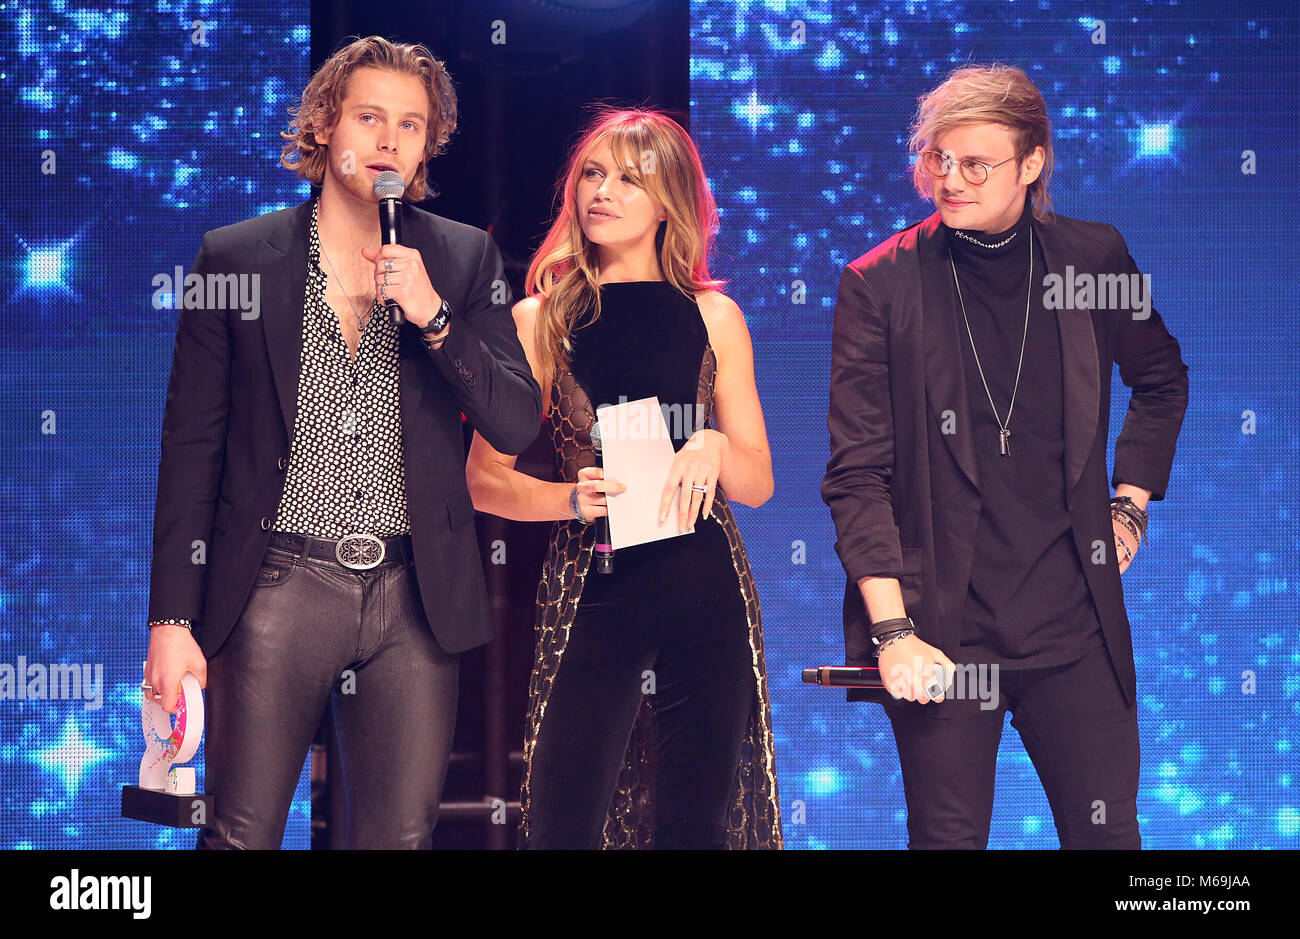 Abbey Clancy With Ashton Irwin And Michael Clifford Of 5 Seconds Of Summer On Stage During The Global Awards And New Awards Show Hosted By Global